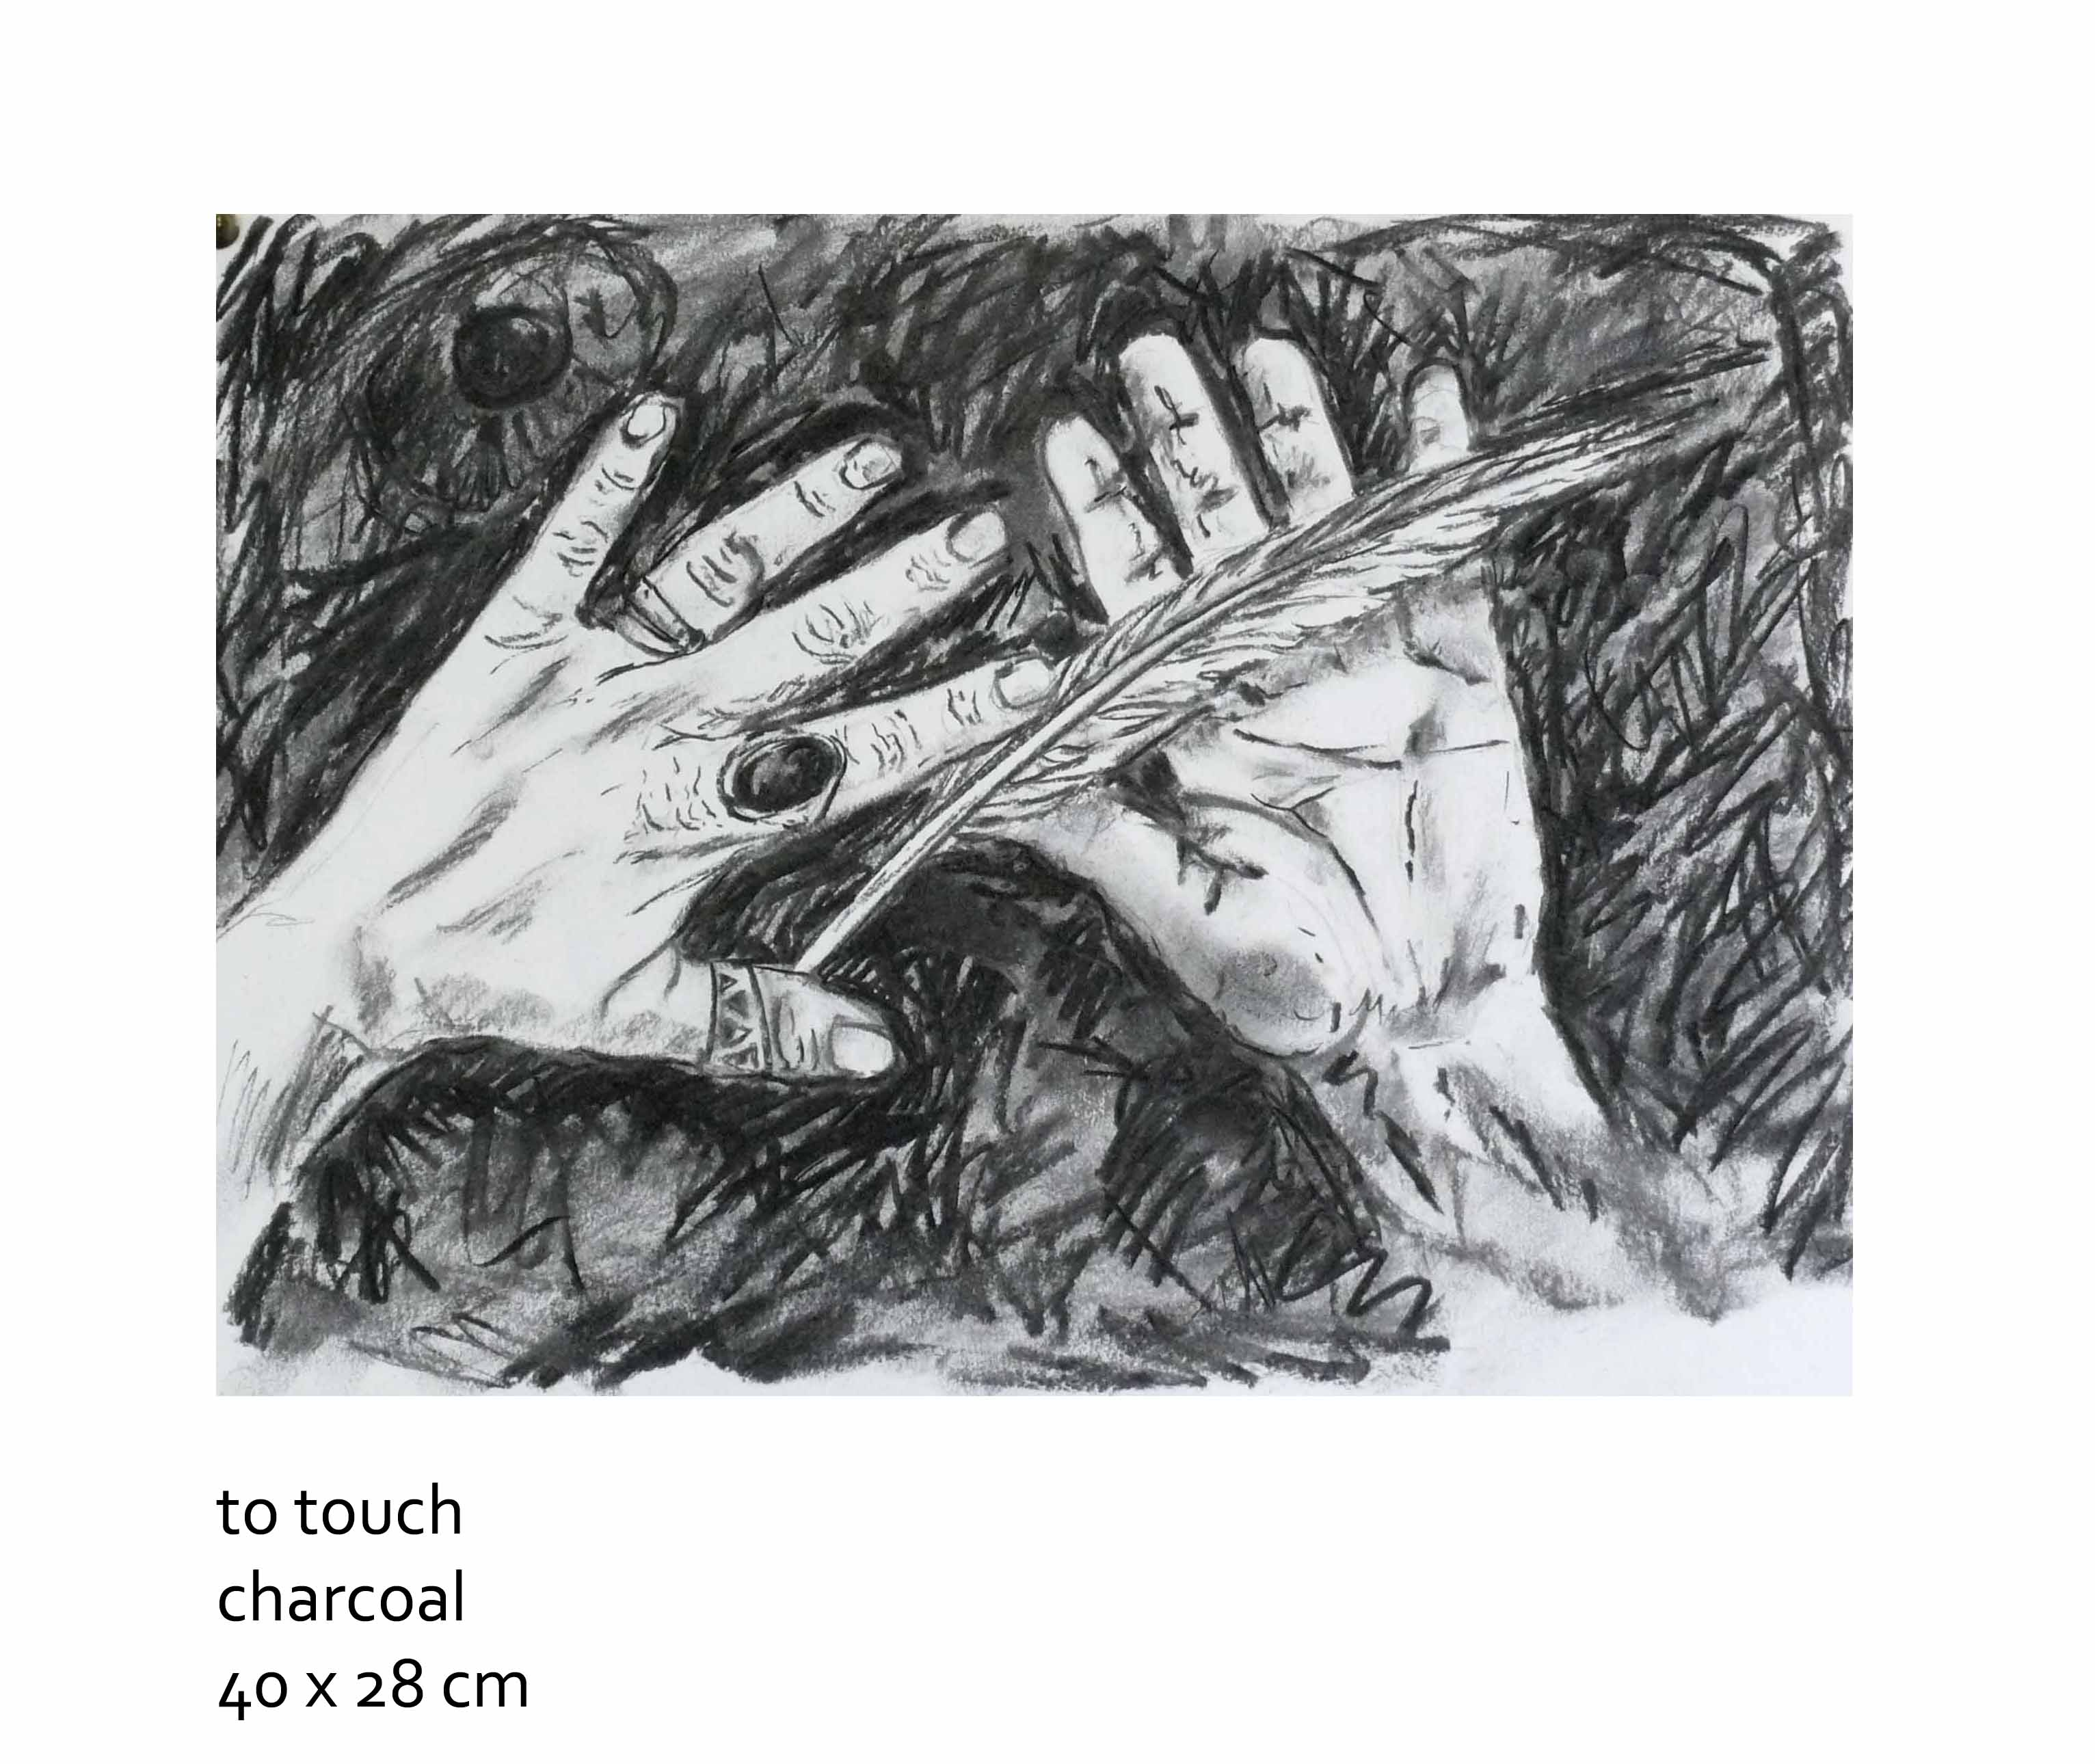 To touch